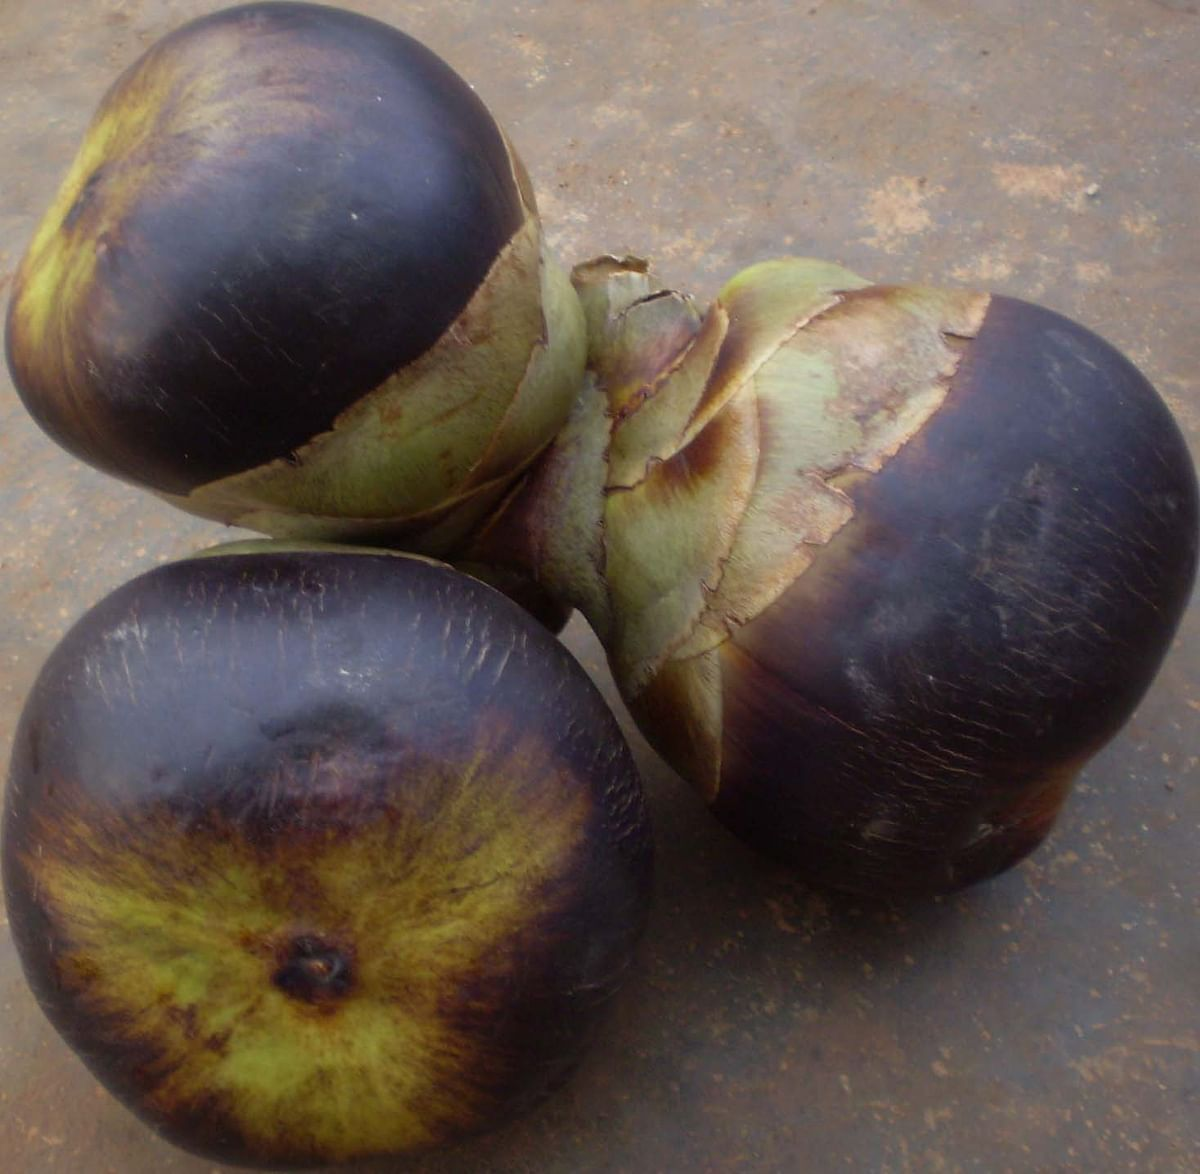 Ice apple is rich in Vitamin A, B and C, Iron and Zinc.